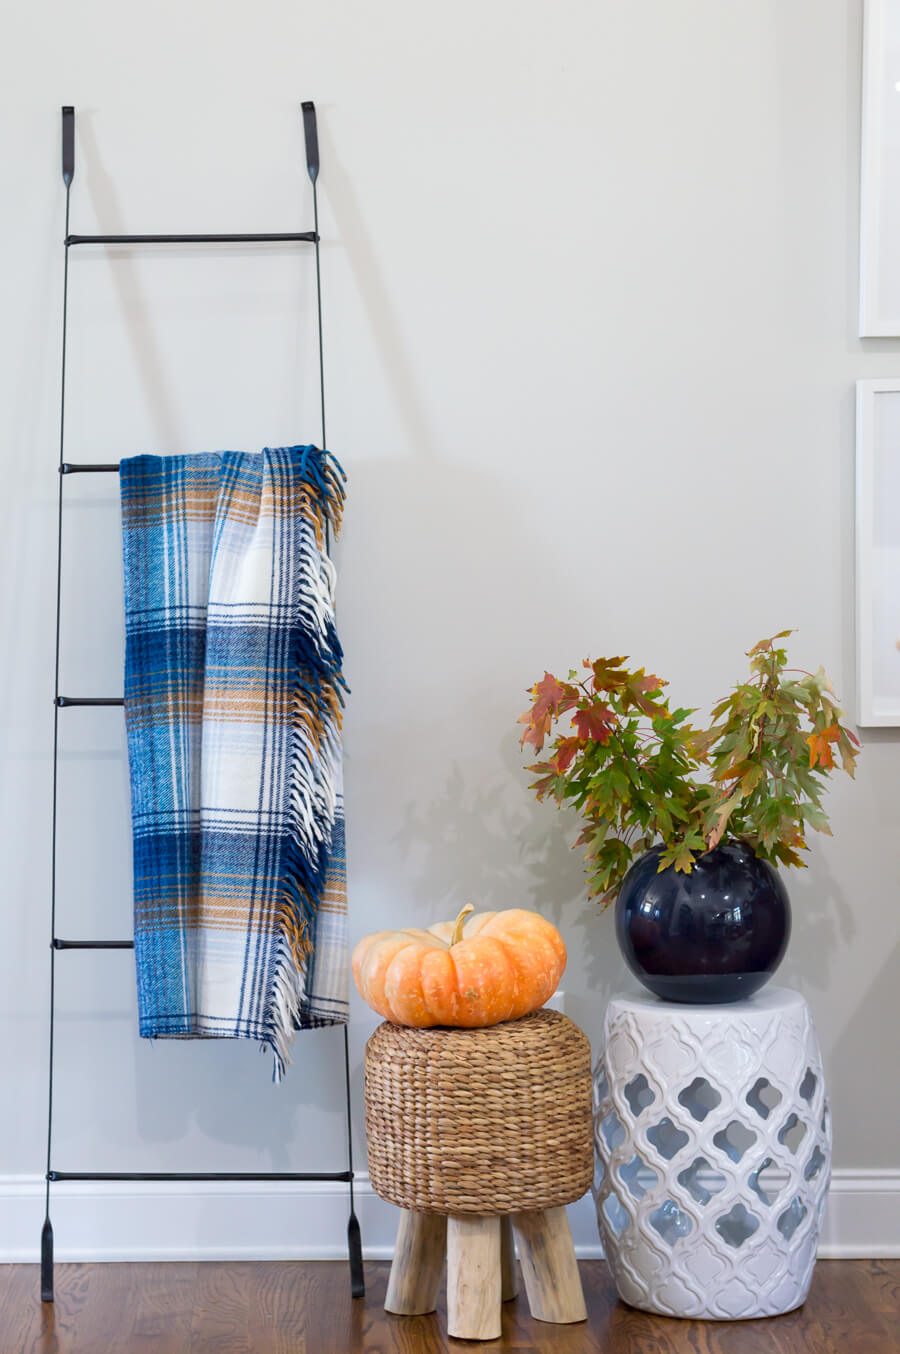 Magnolia ladder and fall leaves clipping